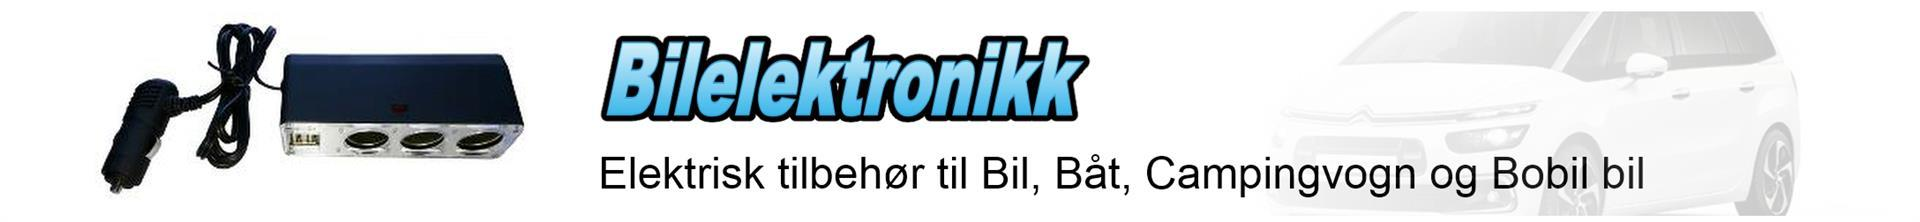 Elektronikk for bil, båt og caravan